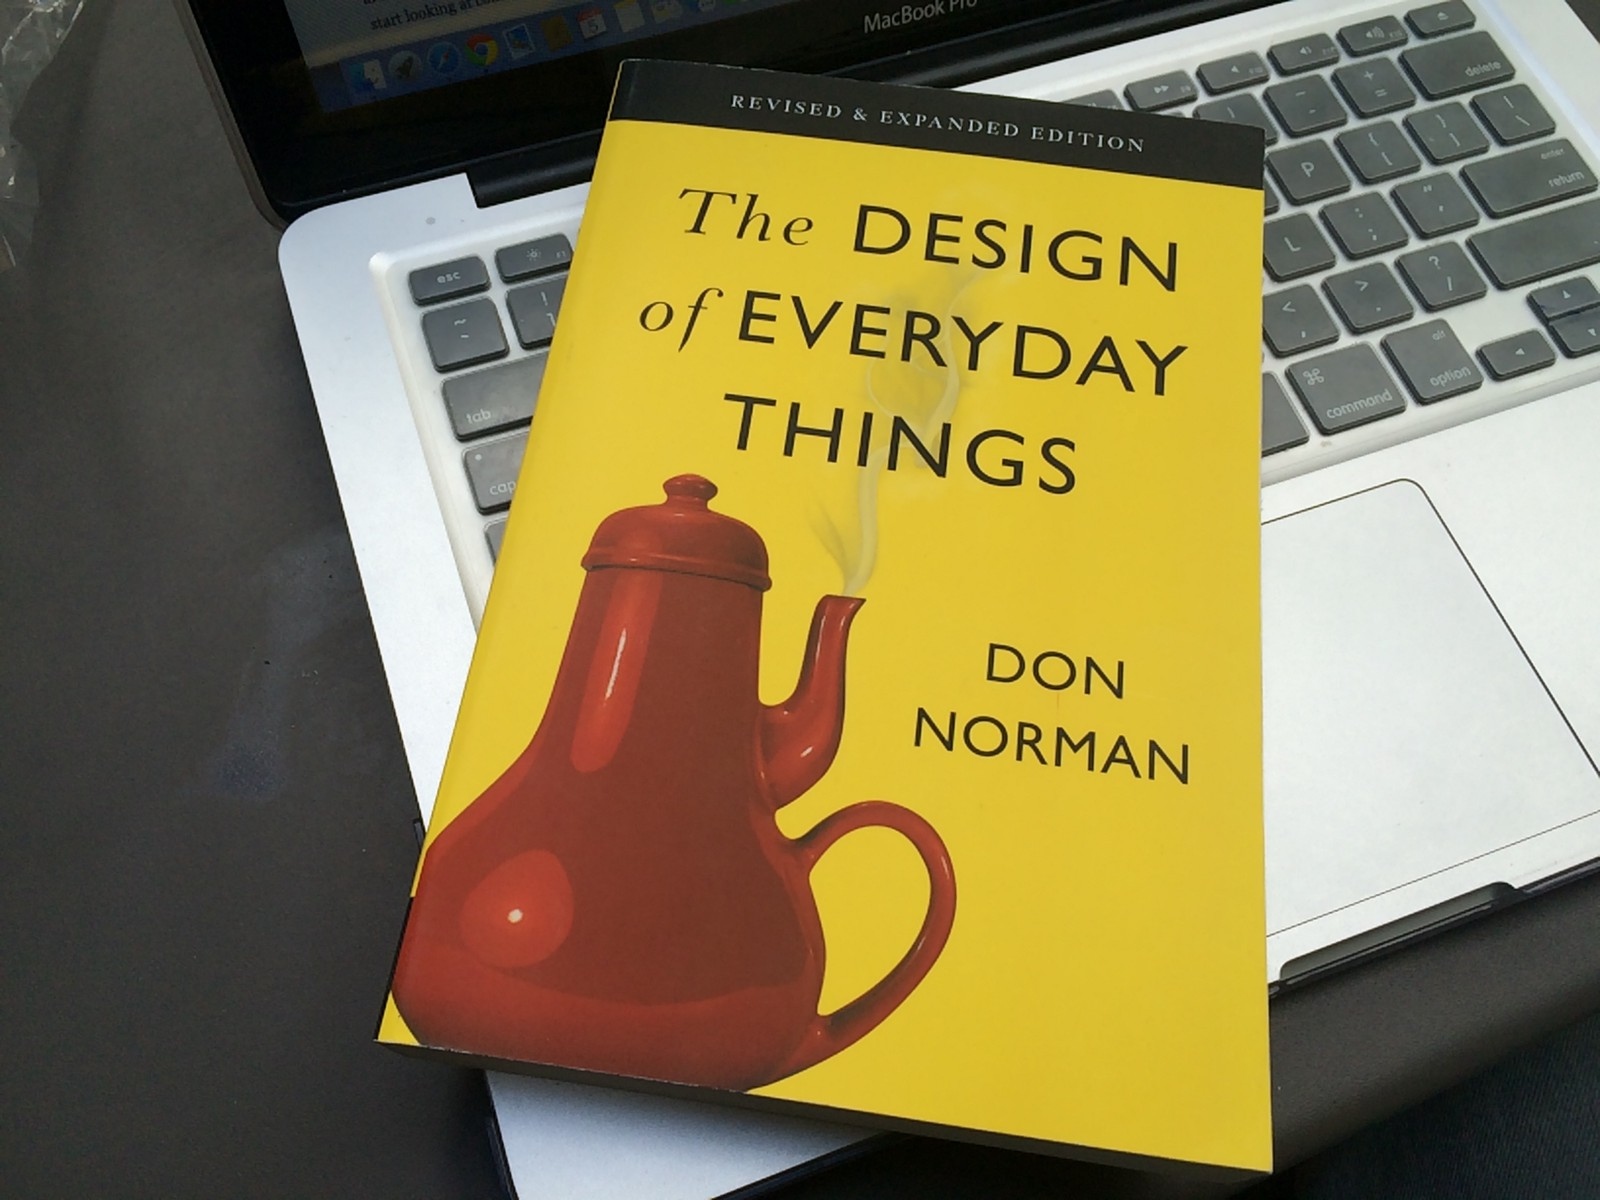 6 ways to apply the principles of design to your life